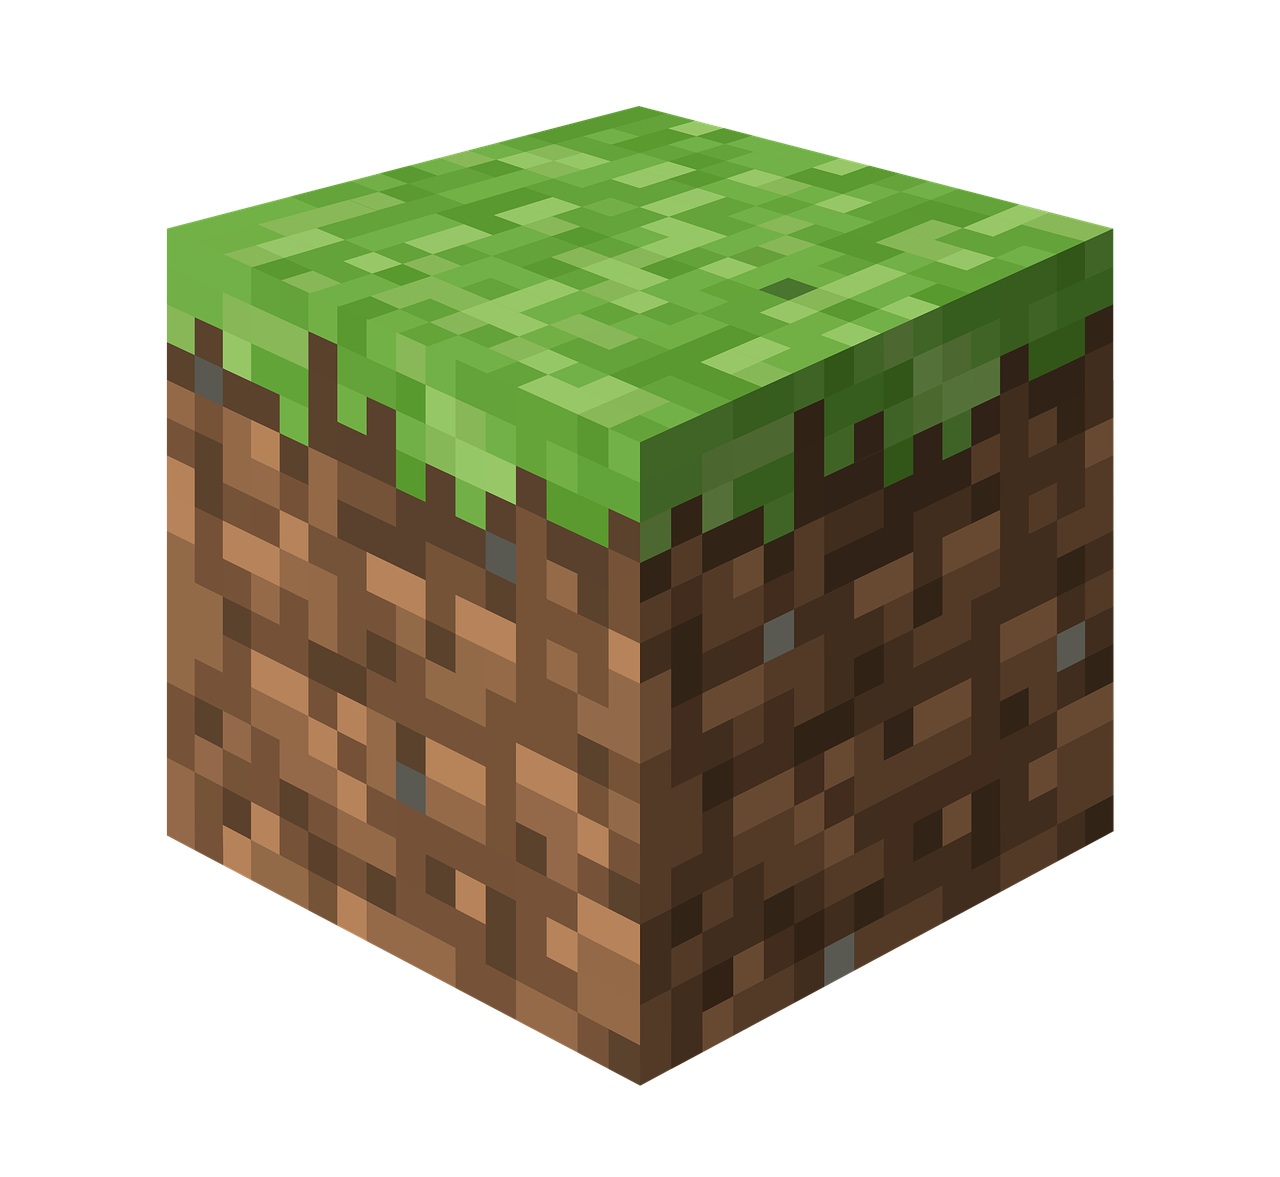 A Minecraft dirt block